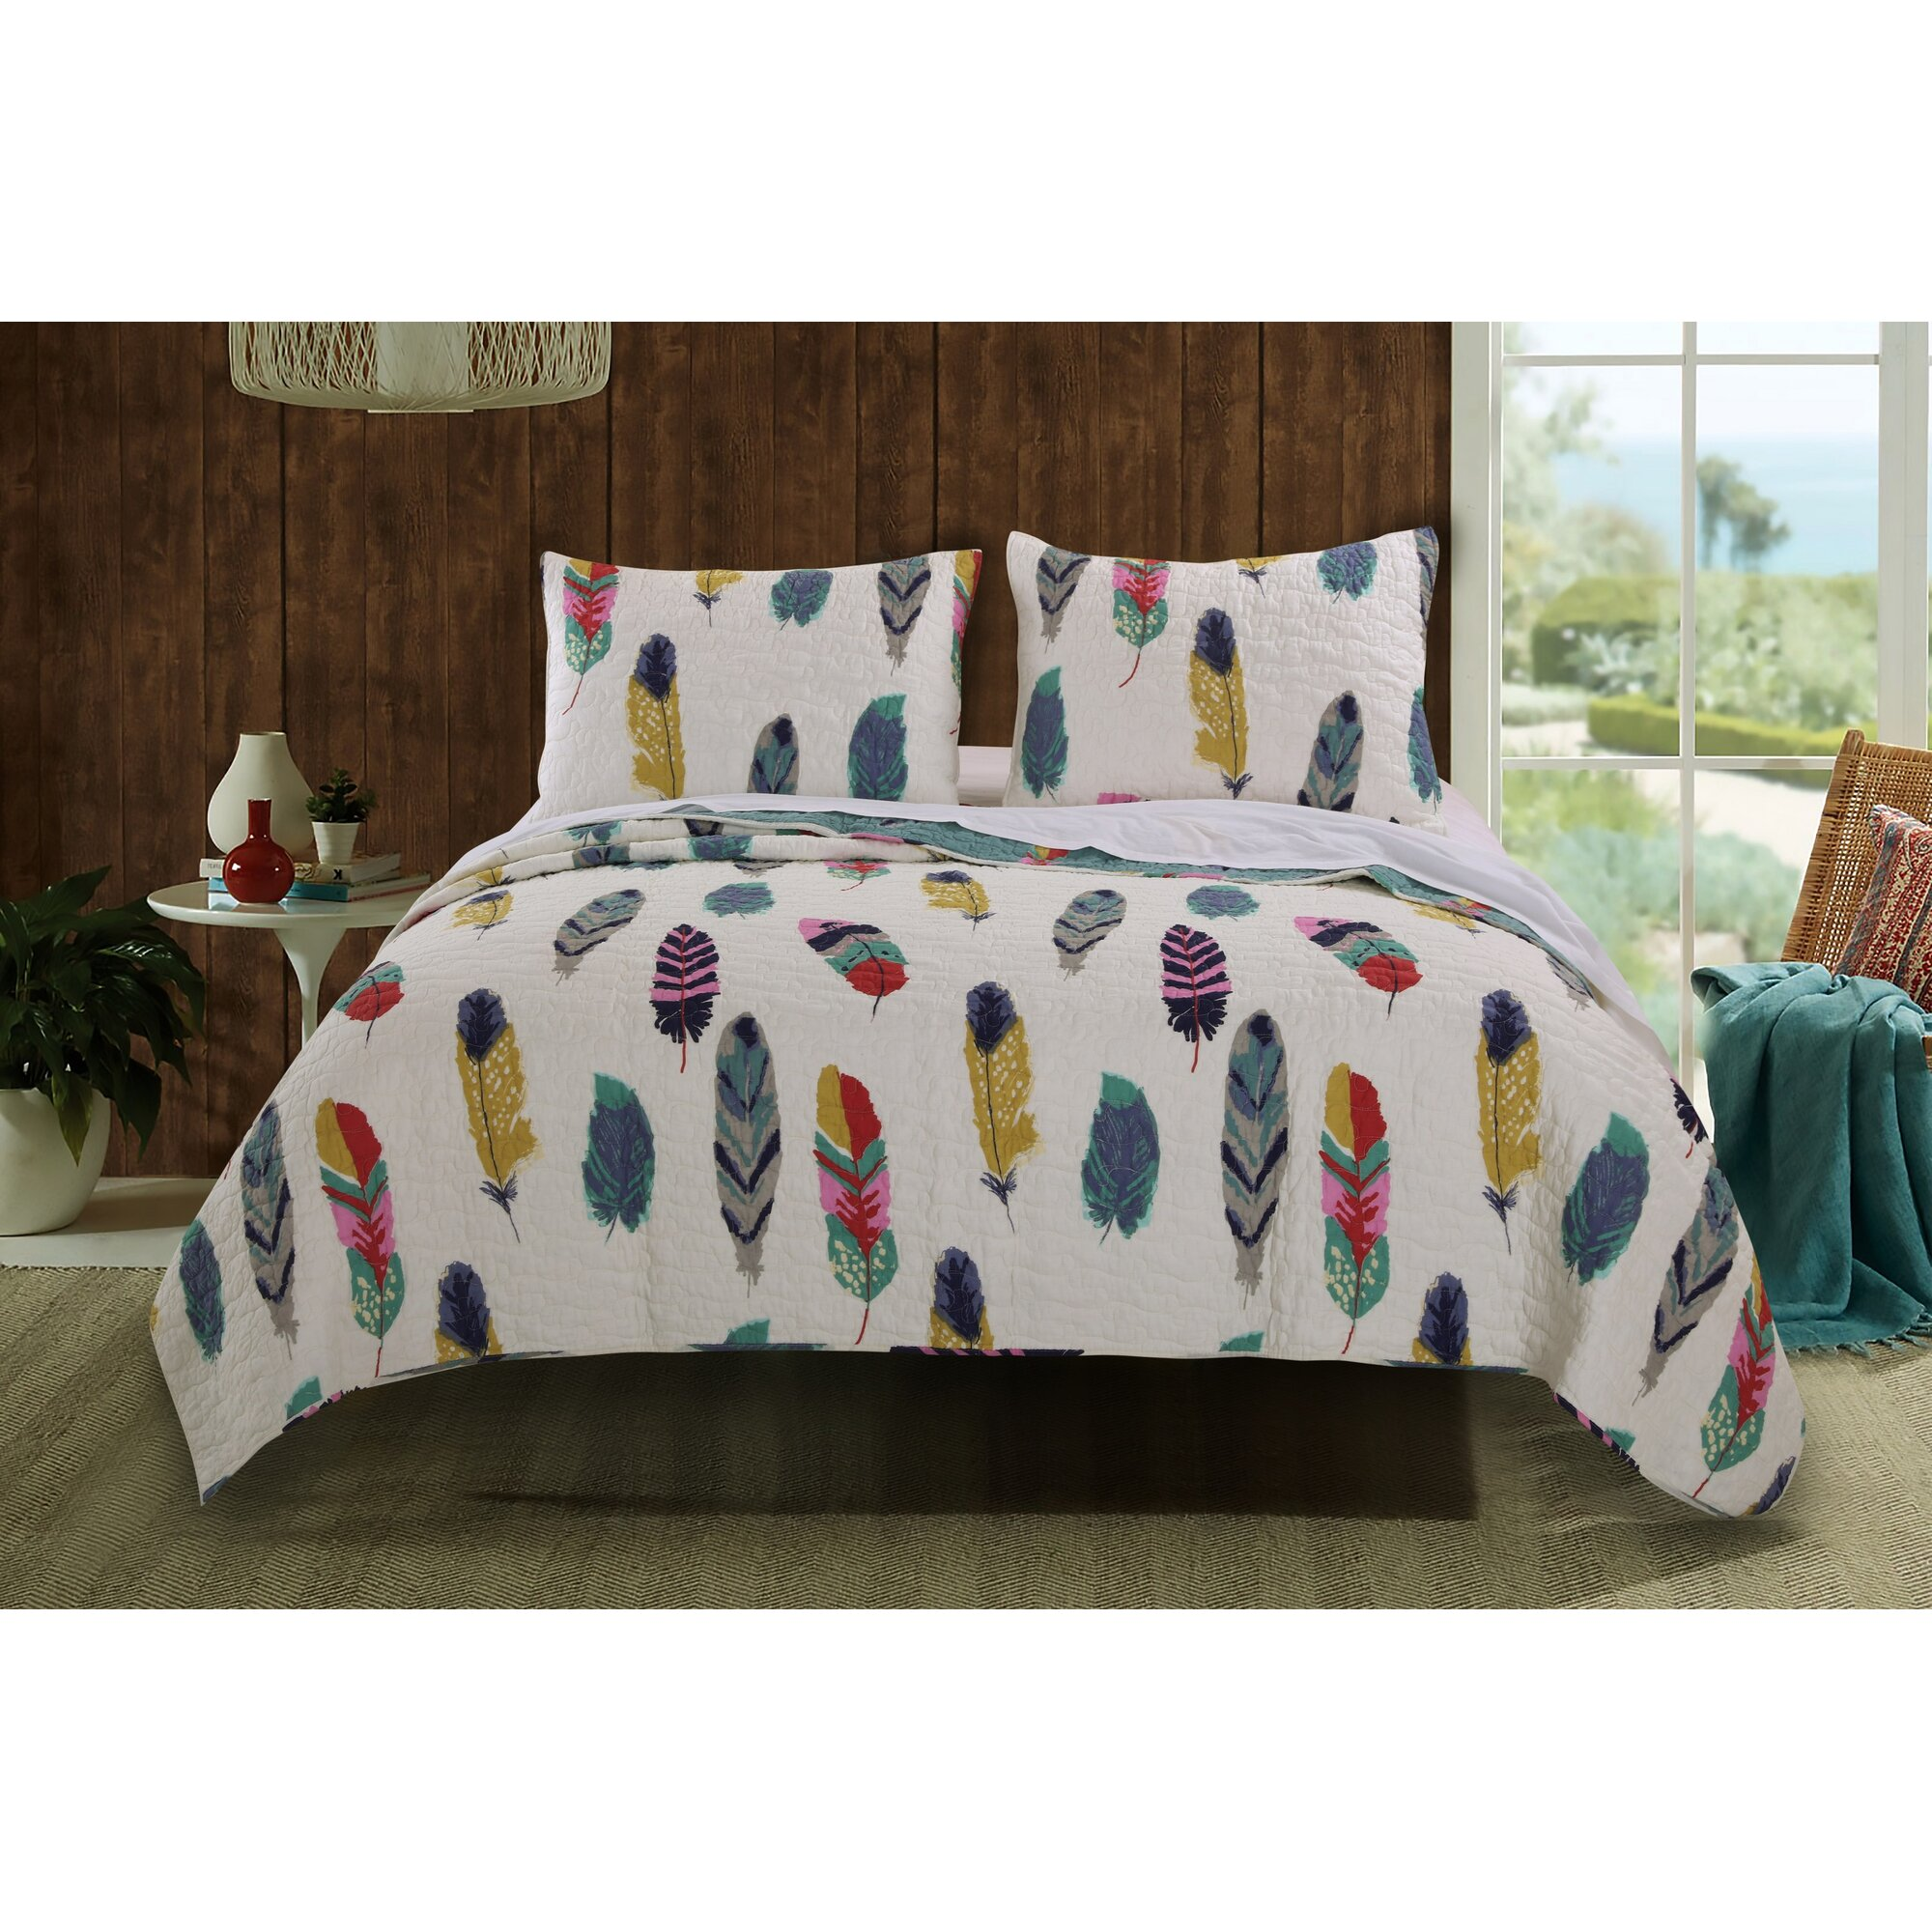 Greenland Home Fashions Dream Catcher Reversible Quilt Set